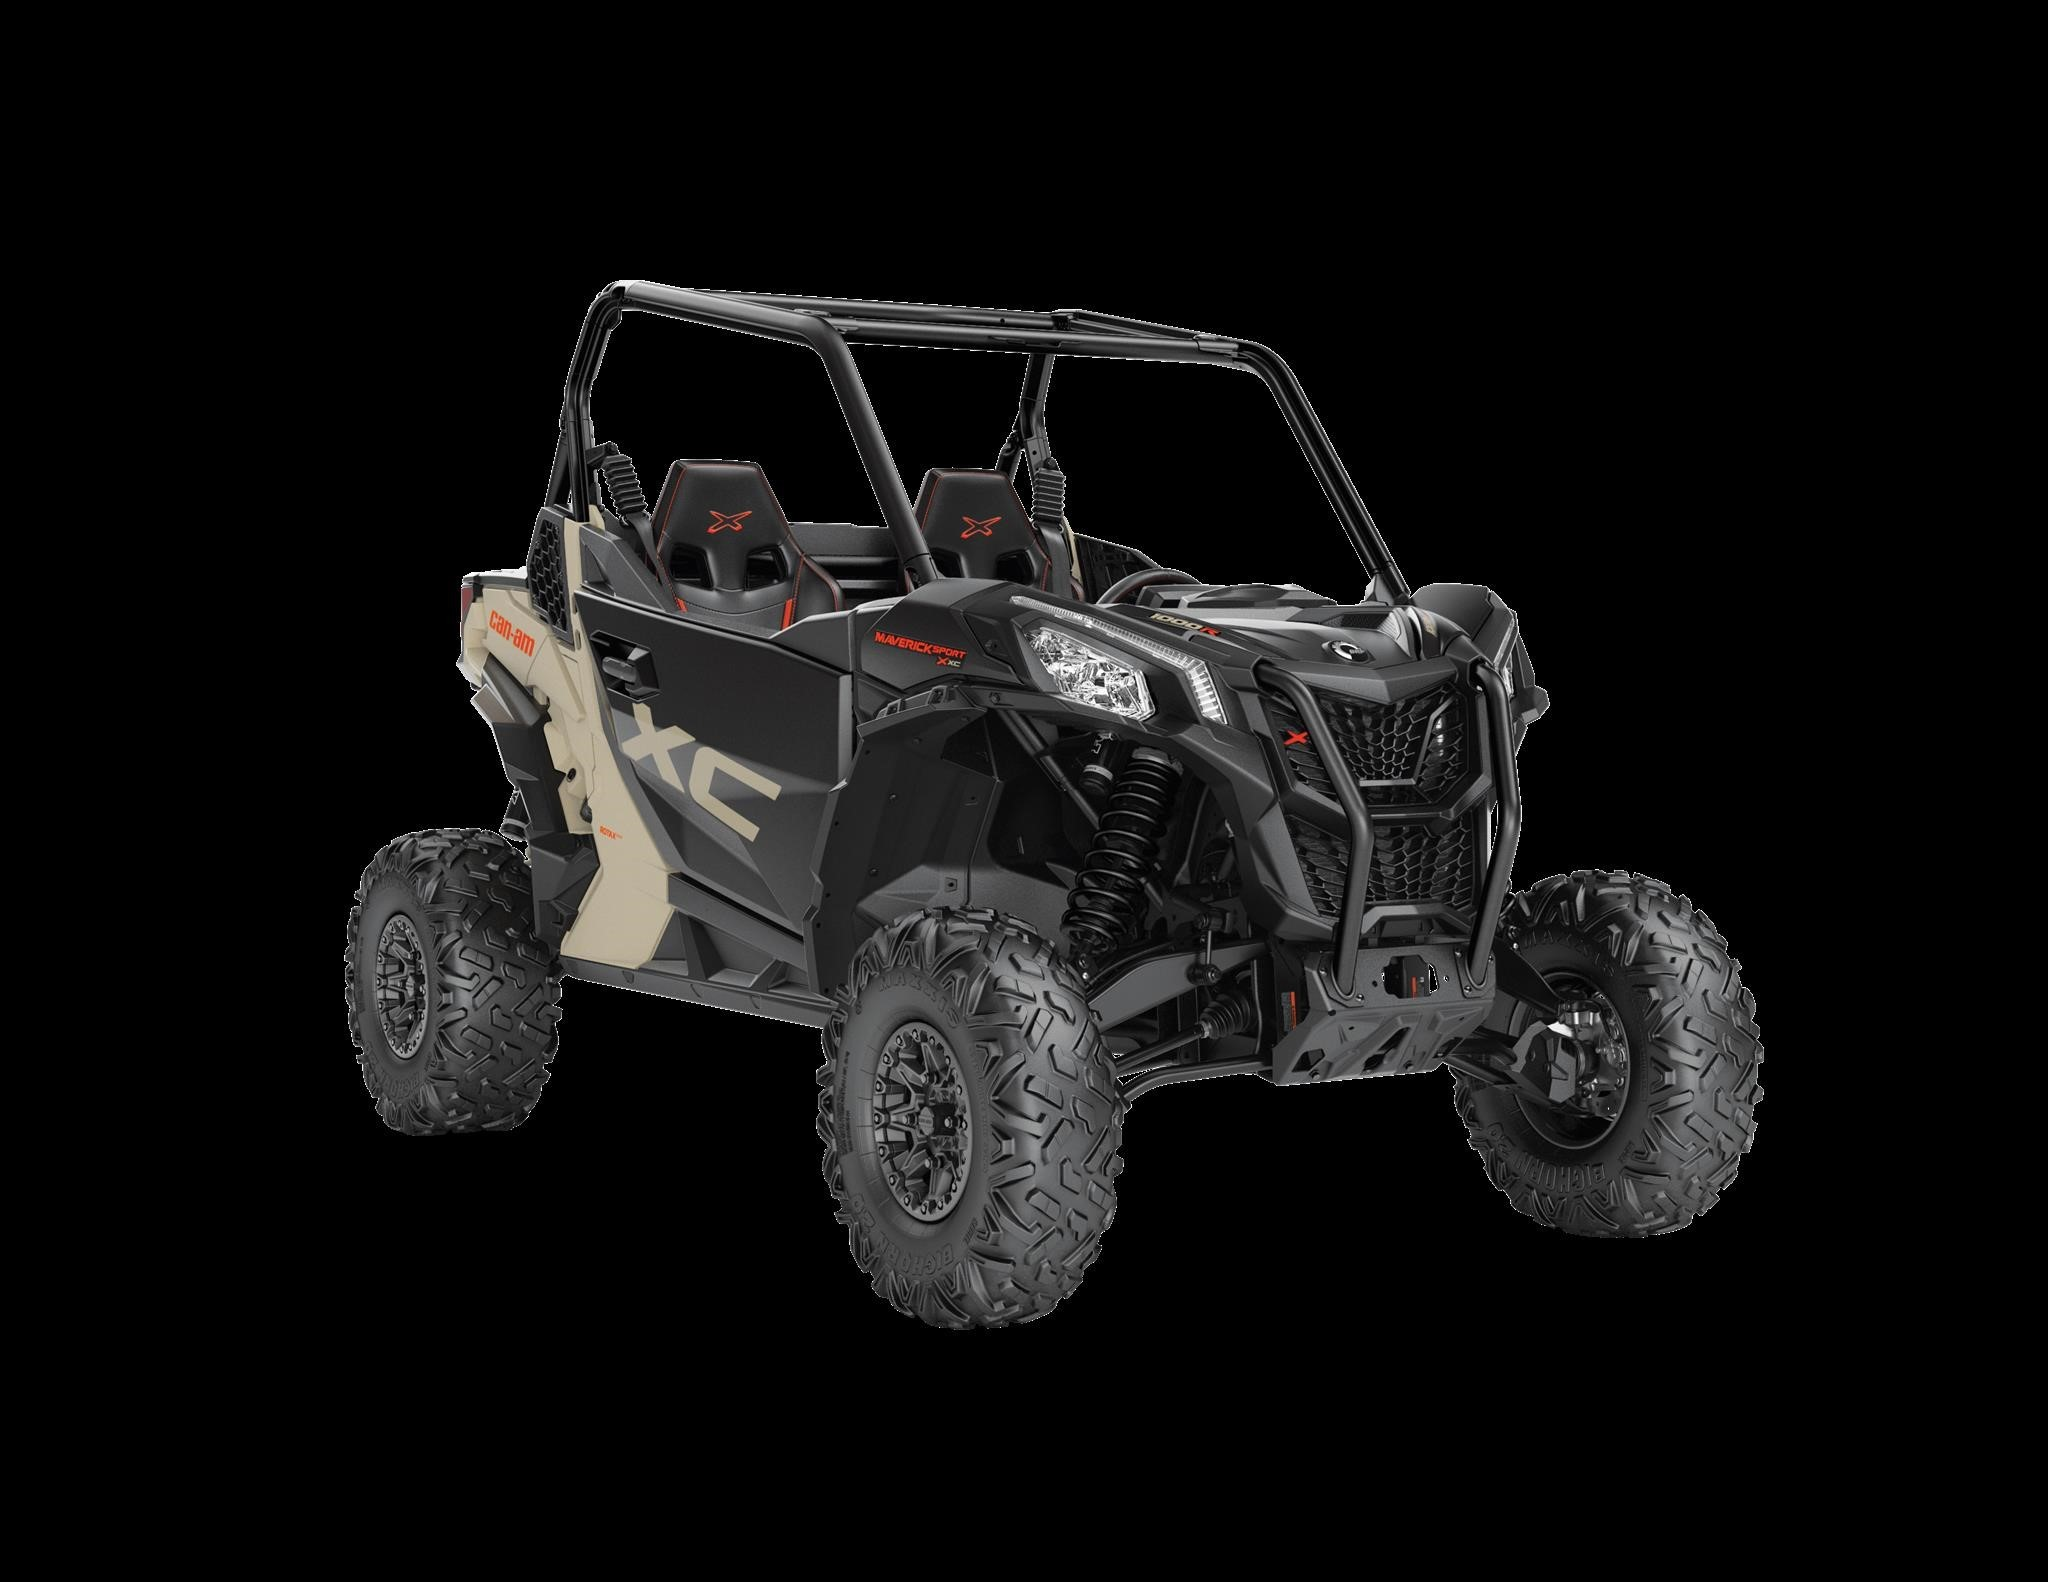 2022 Can-Am MAVERICK SPORT X XC 1000R ATVs and Utility Vehicle